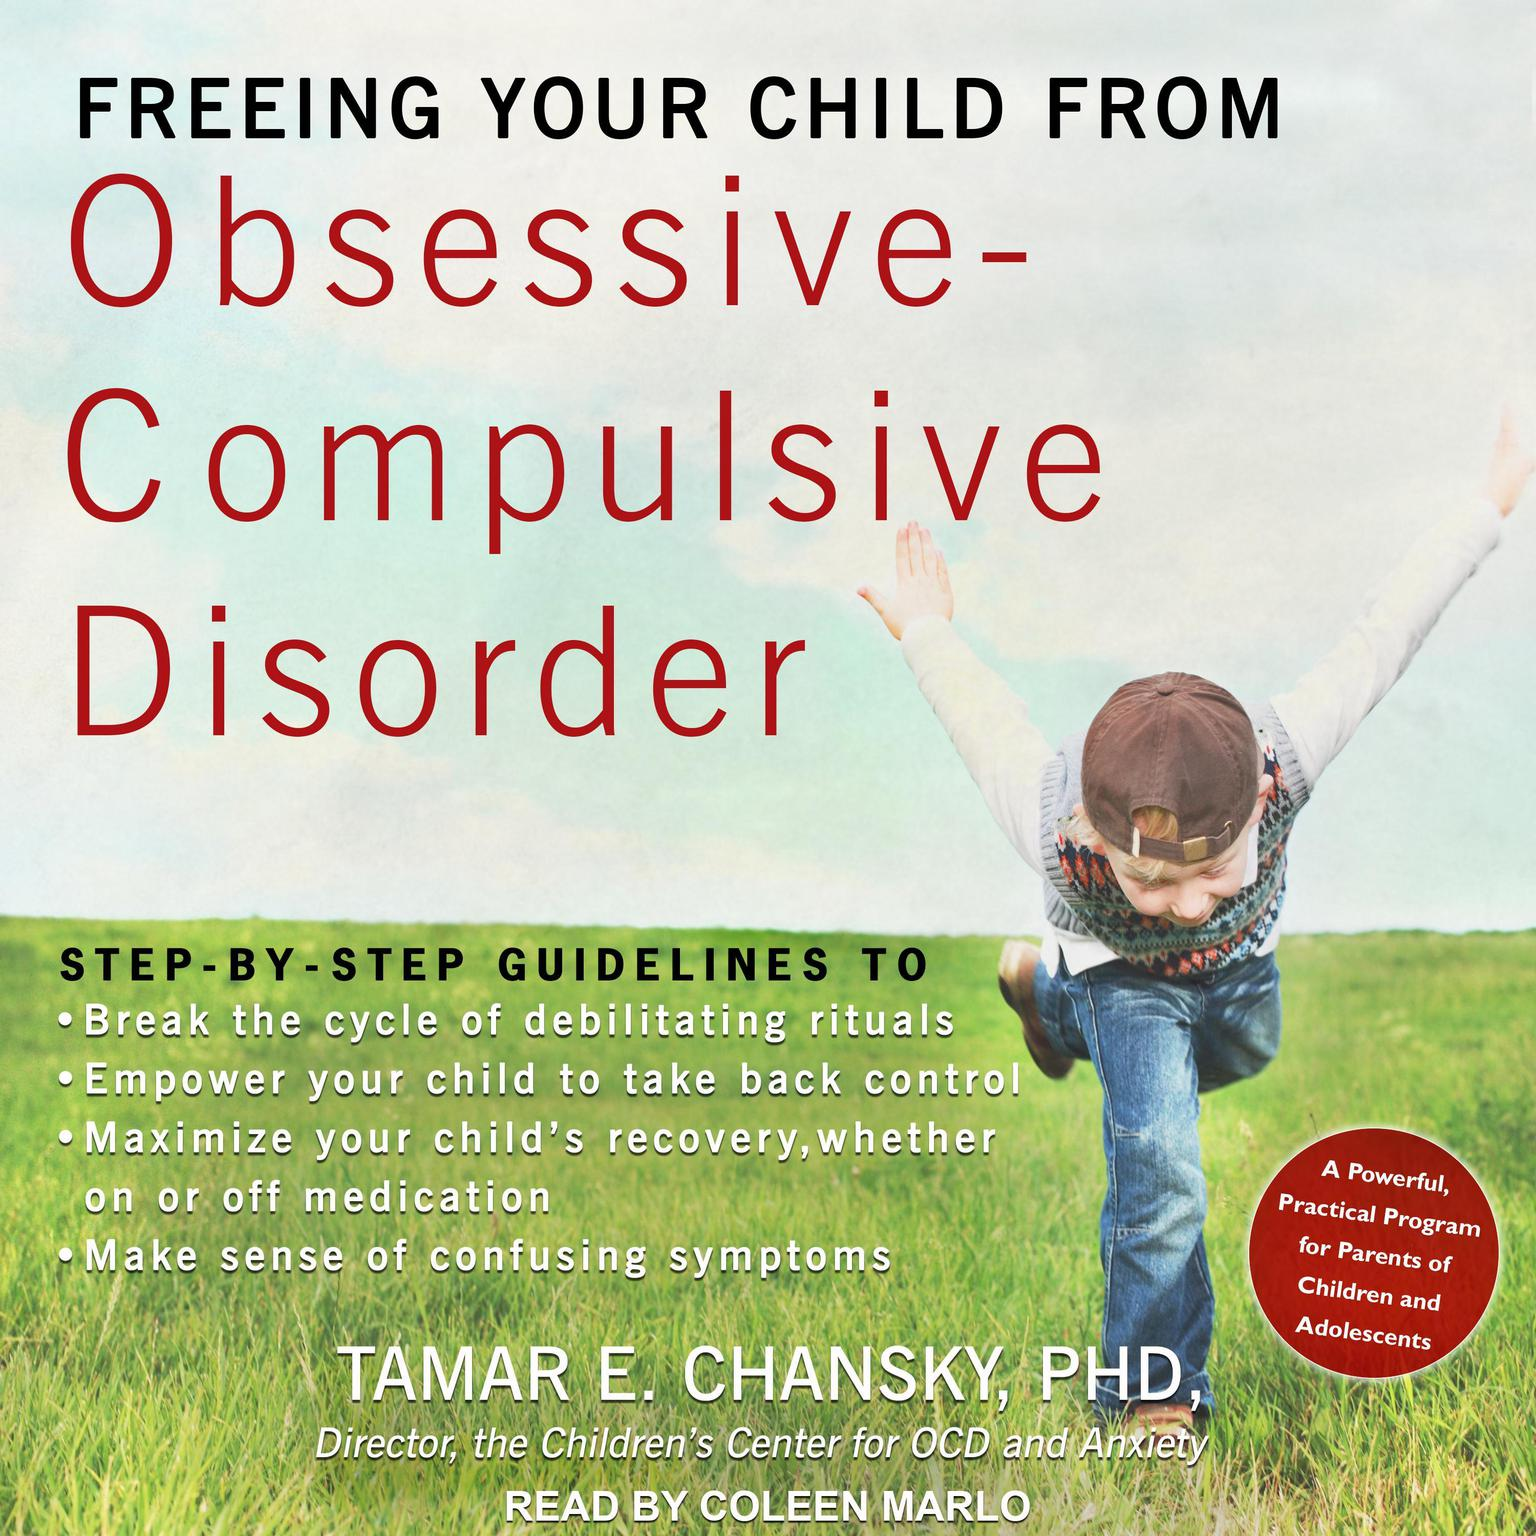 Freeing Your Child From Obsessive Compulsive Disorder